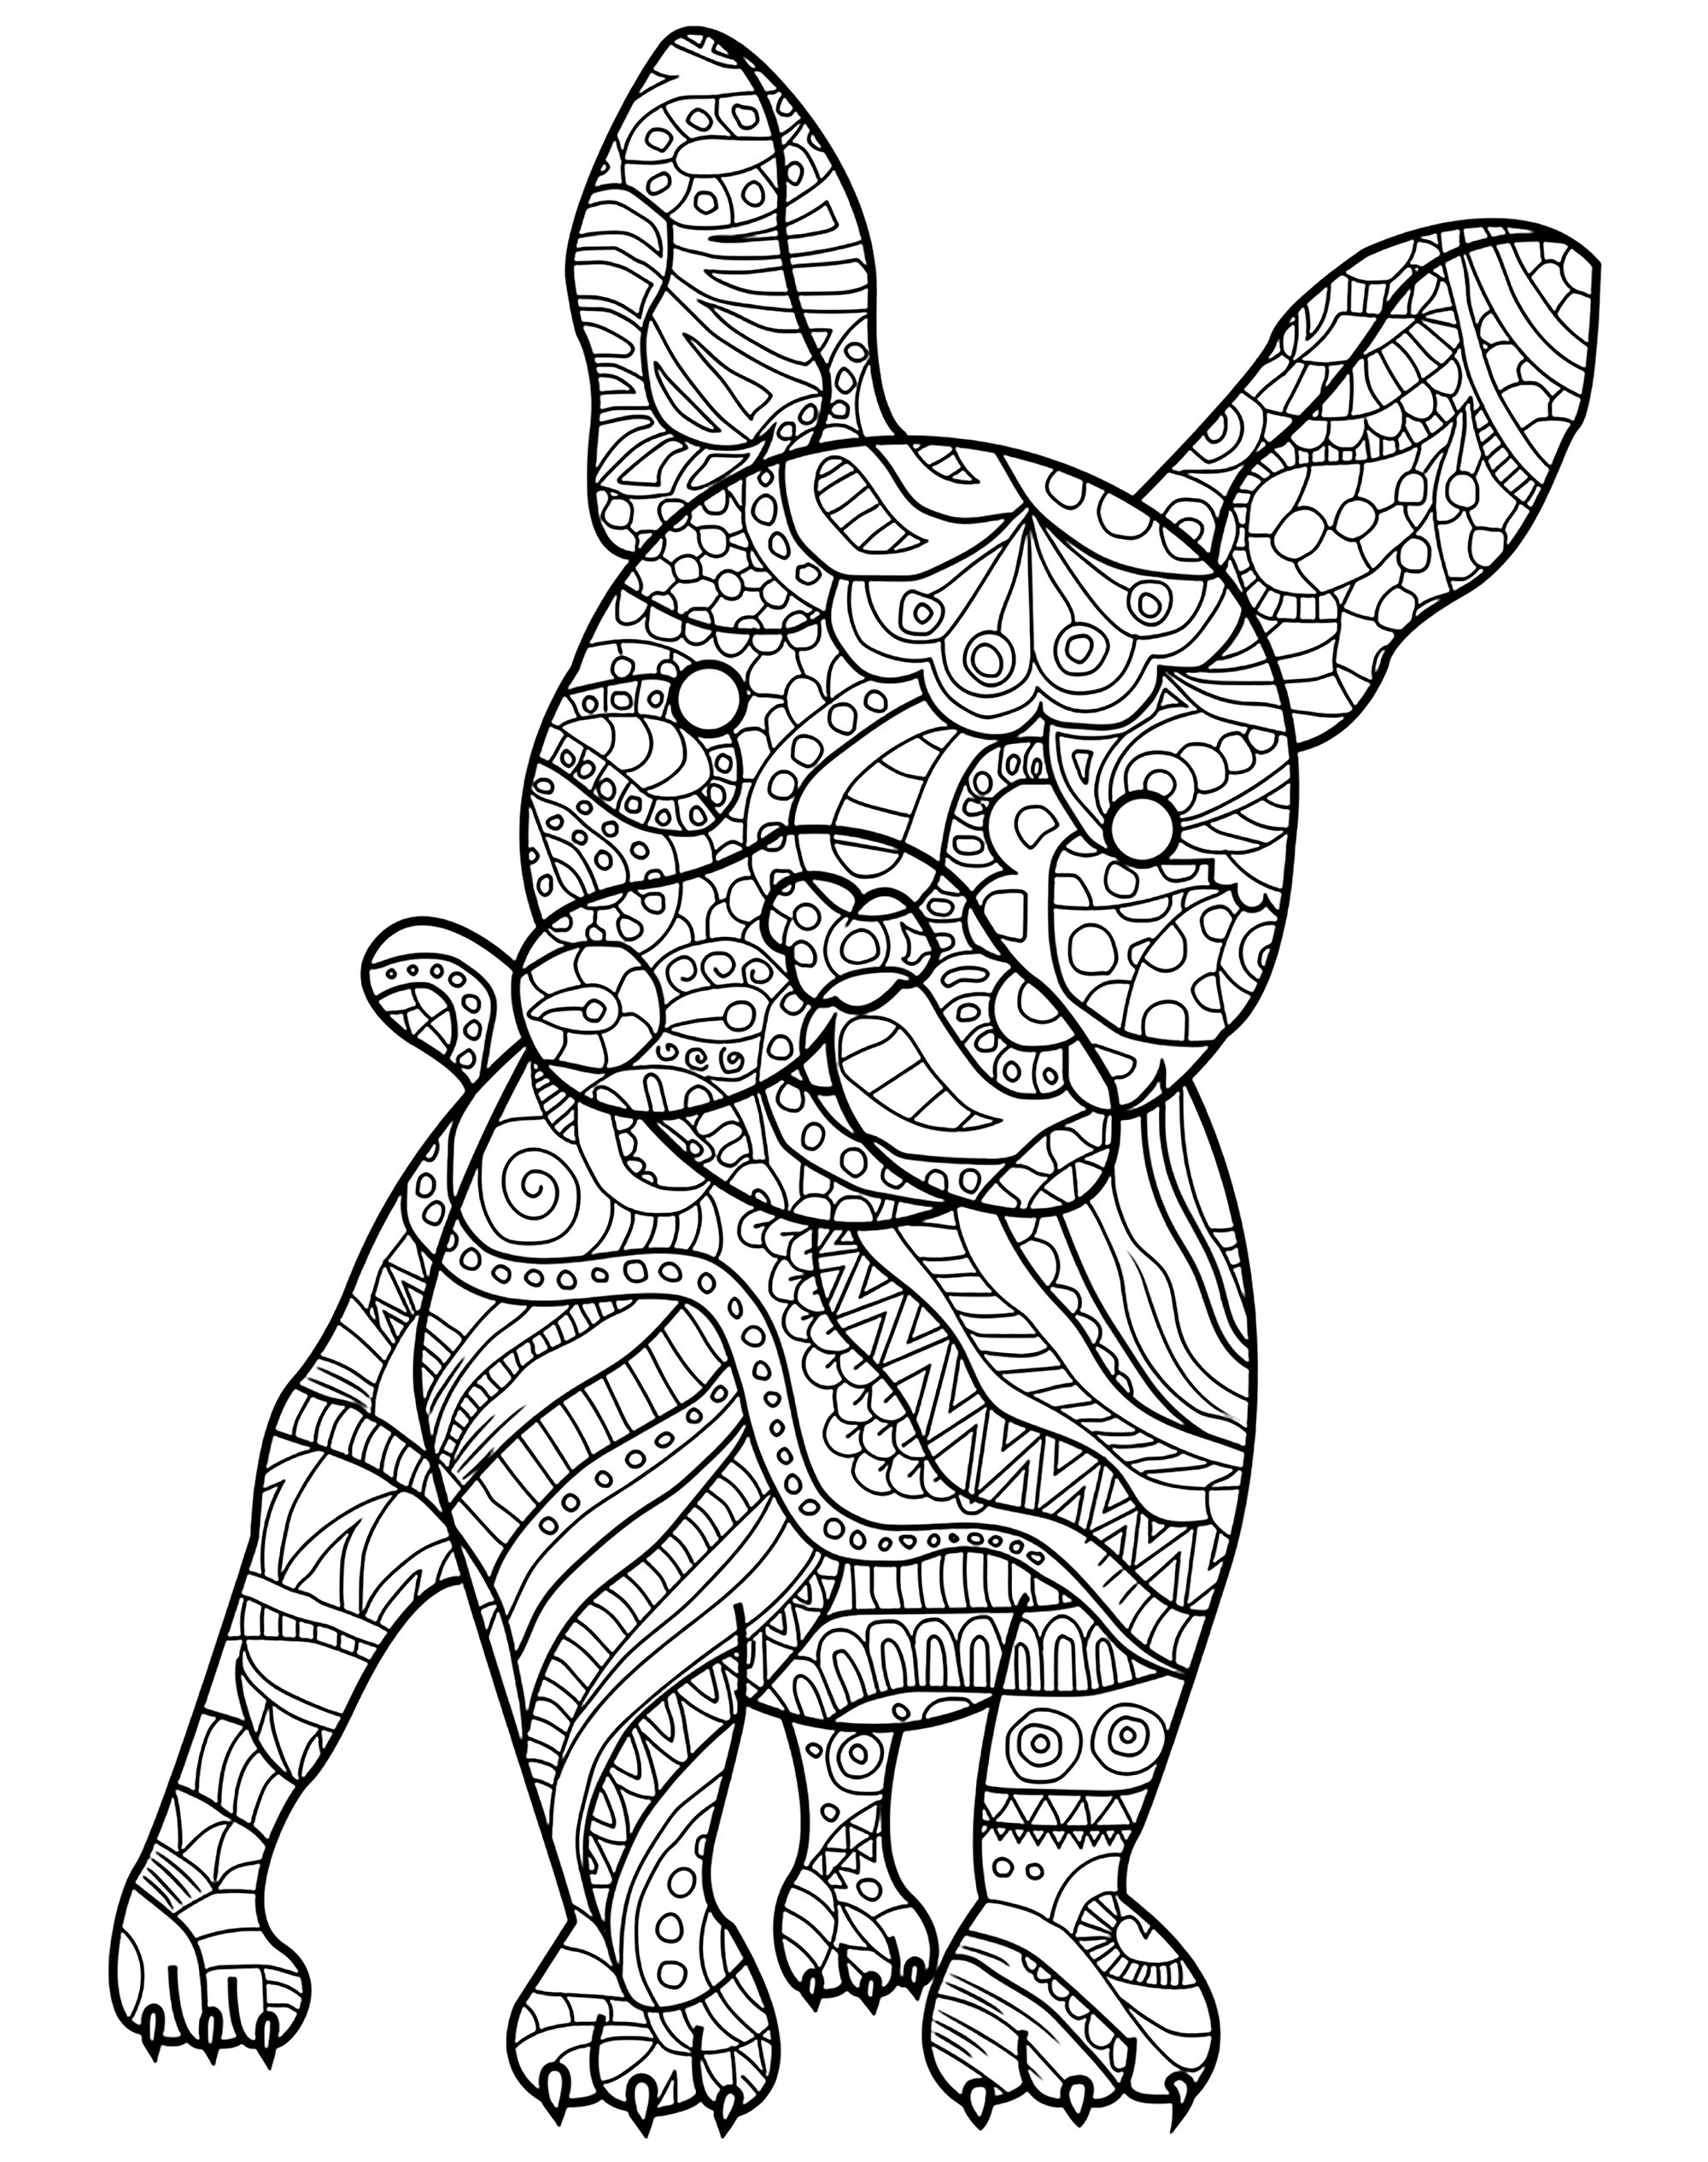 - French Bulldog And Its Harmonious Patterns - Dogs Adult Coloring Pages